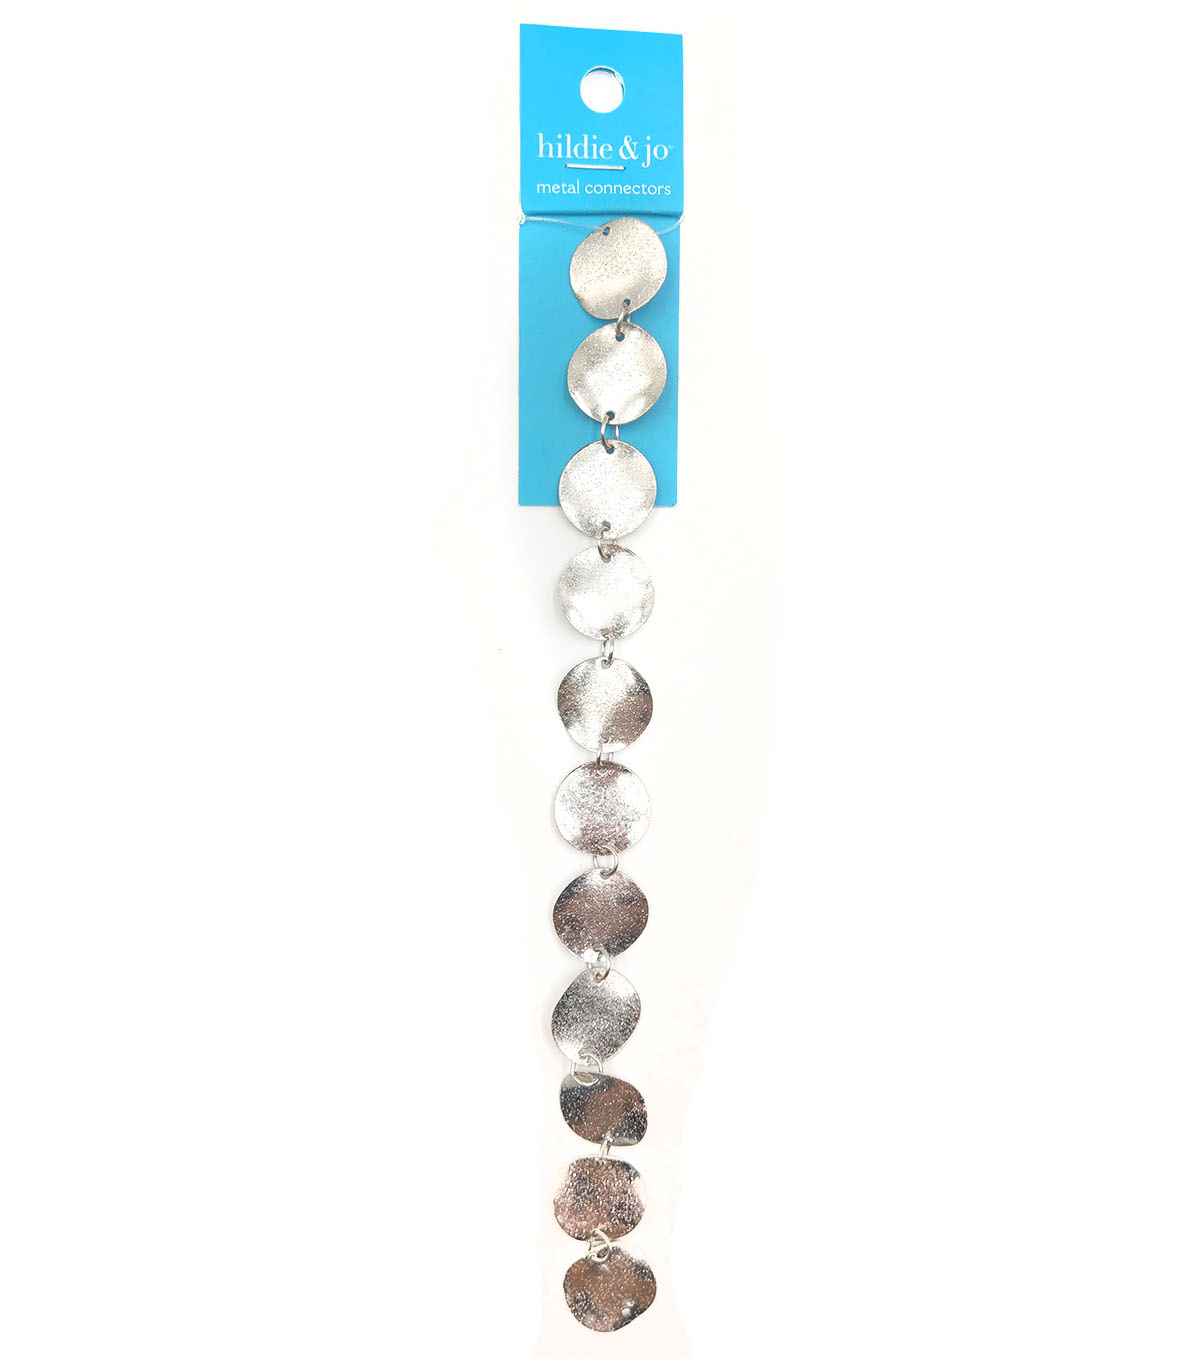 hildie & jo Textured Disk Metal Connector Strung Beads-Silver